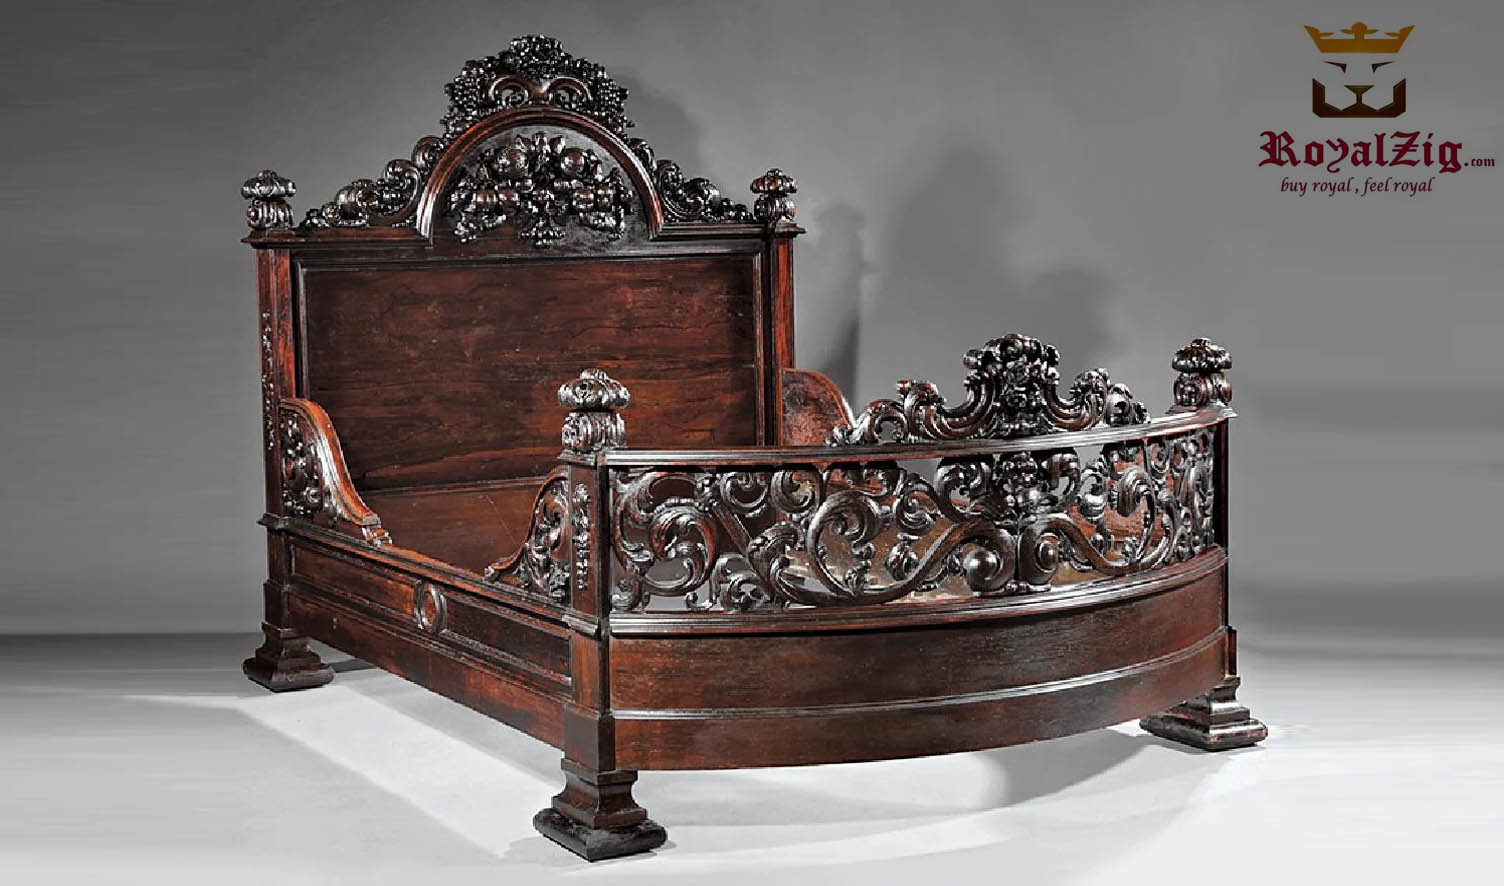 Indian Maharaja Style Carved Antique Sheesham Bed Buy Online in India Brand Royalzig Luxury Furniture